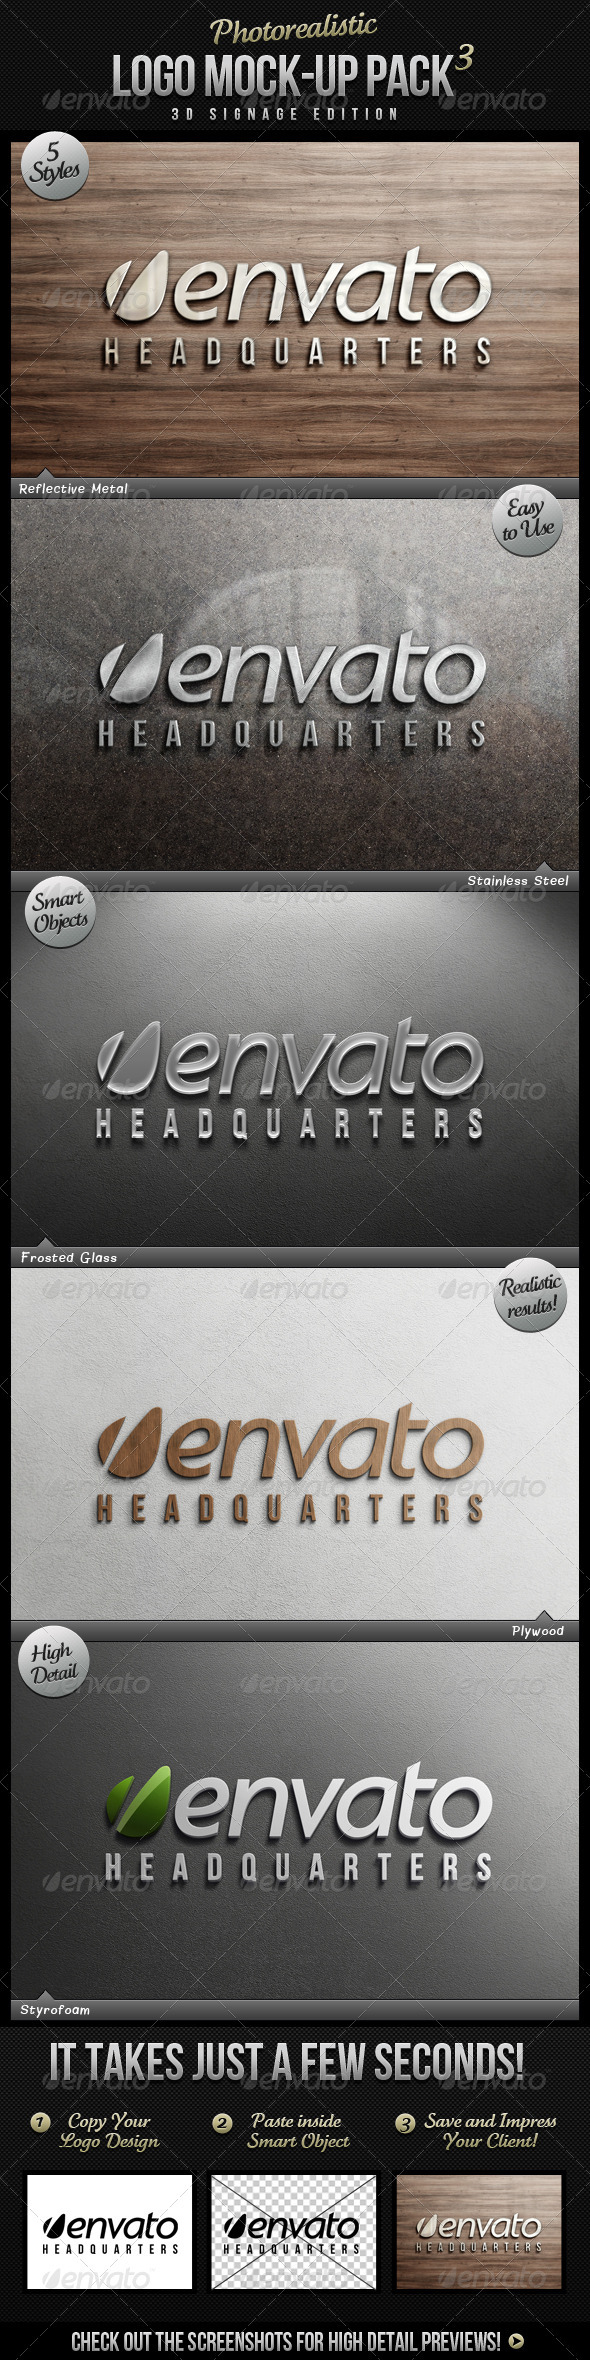 Photorealistic Logo Mock-Up Pack 3 - Logo Product Mock-Ups